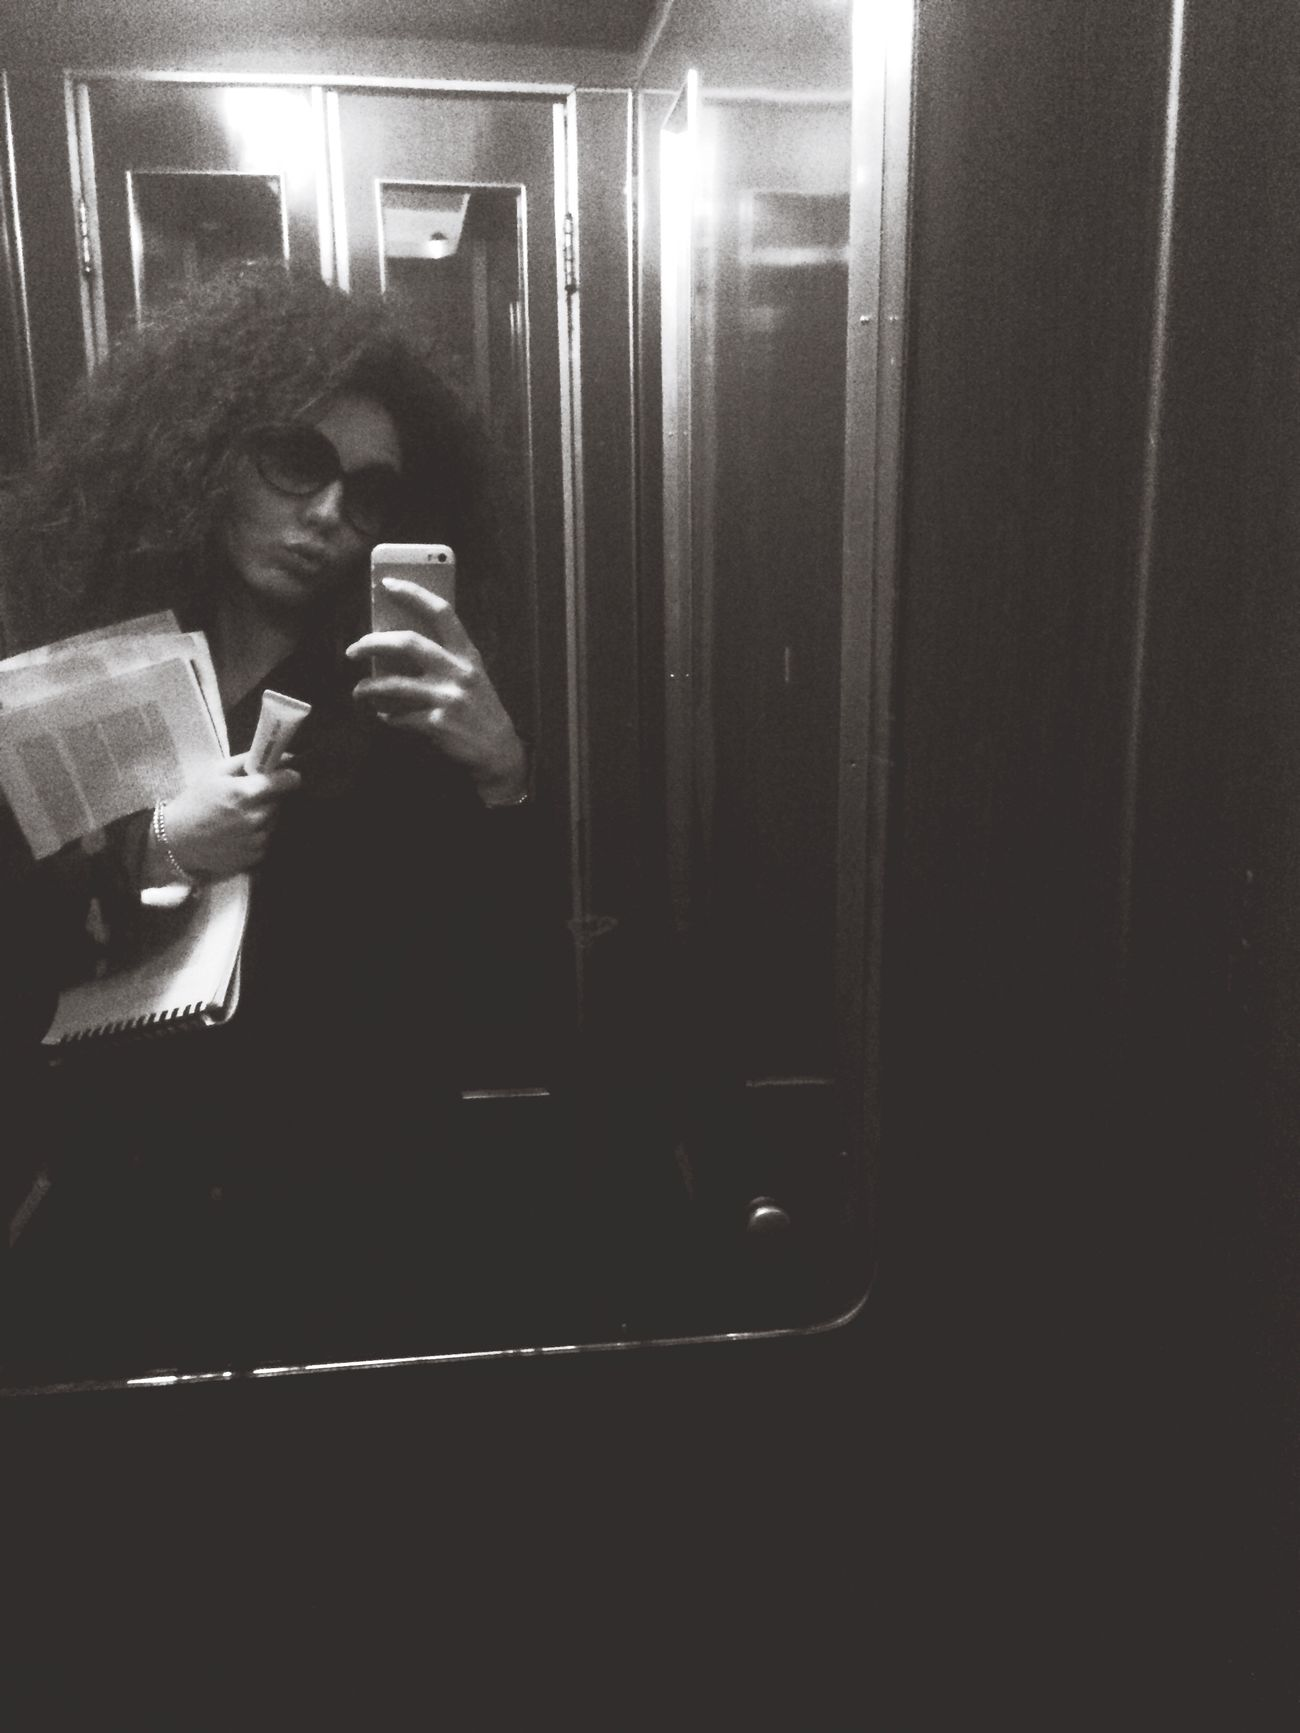 Hello World That's Me Hi! Taking Photos Enjoying Life Girl Curly Italy Myself University Elevator Selfie Studyhard Holiday March 2016😍 2016 Faces Of EyeEm Mylife Machiavelli Locke Hobbes Exam Exams Me Myself And I